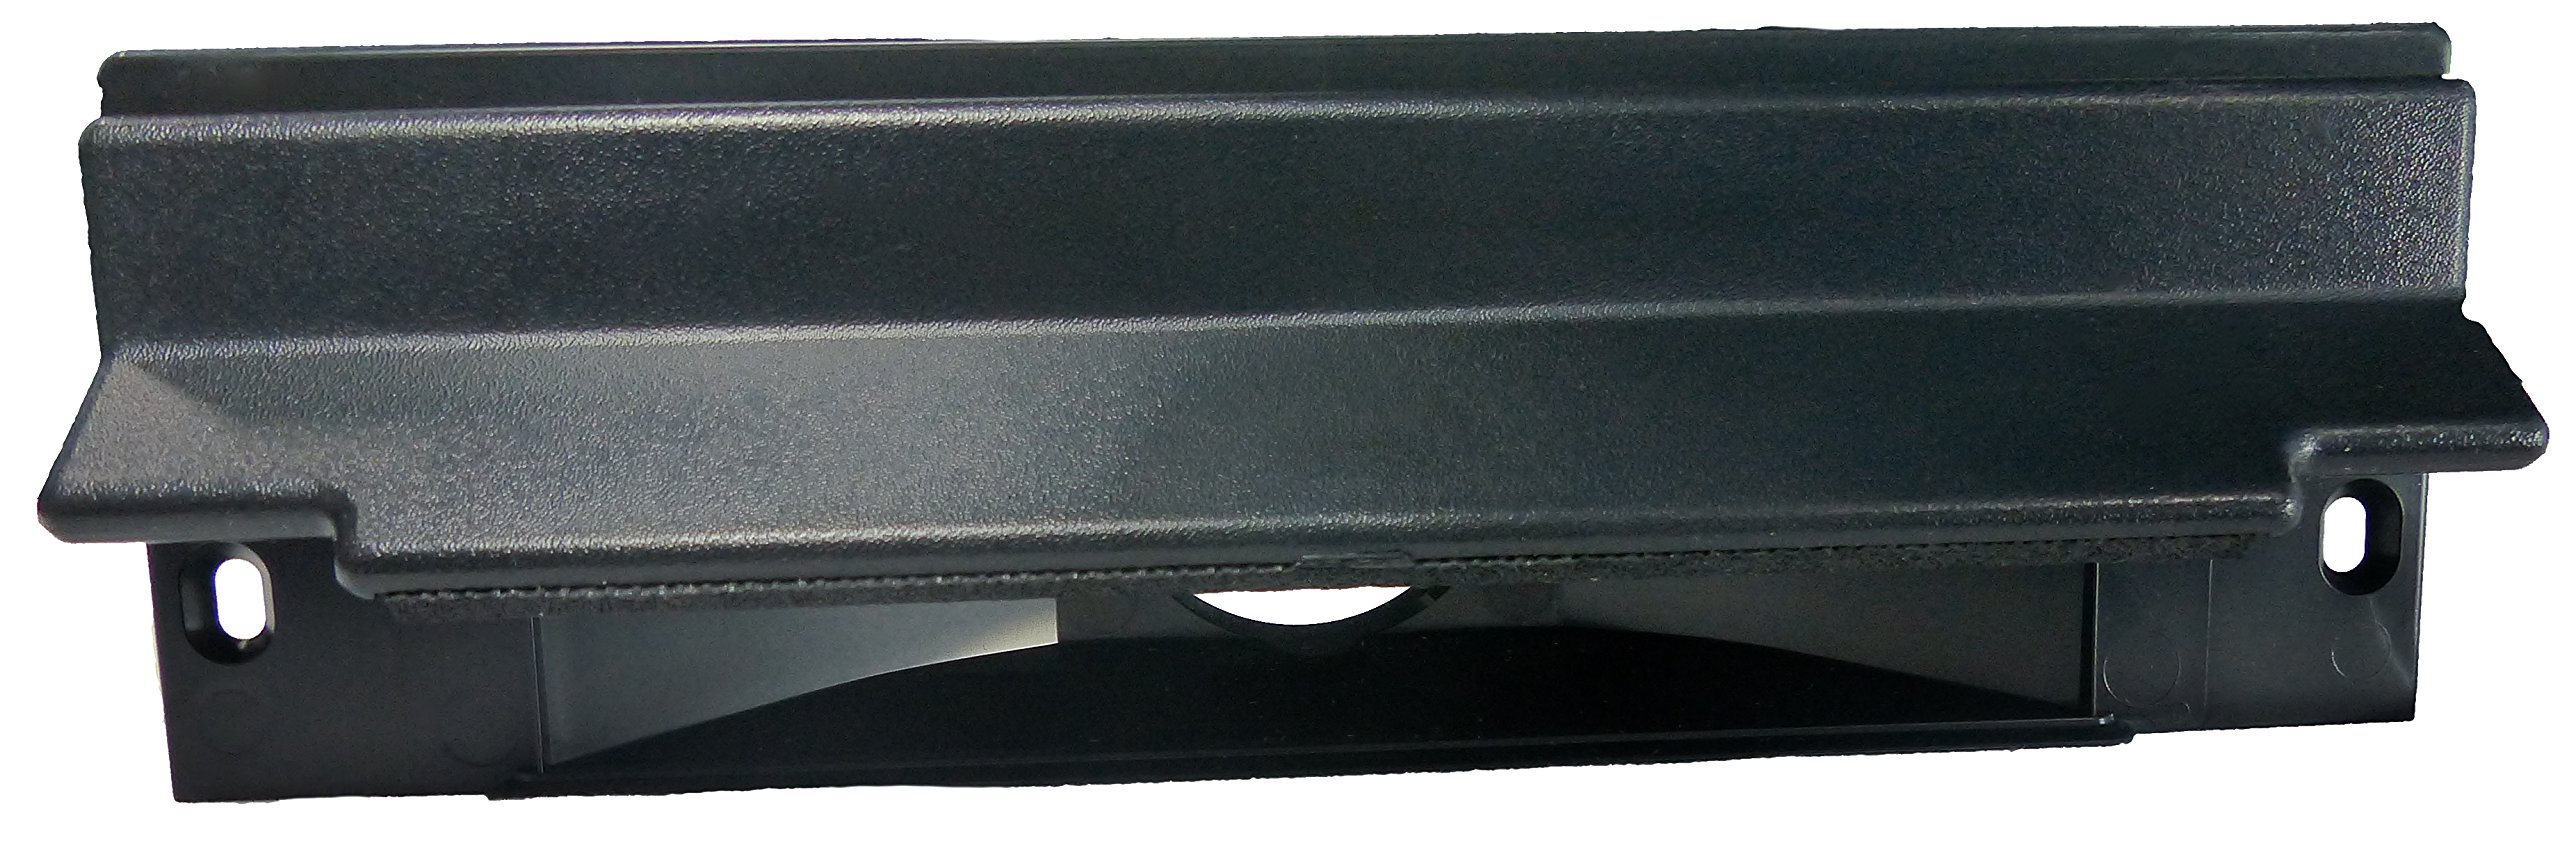 Central Vacuum Sweep Inlet. CanSweep Dustpan Inlet Valve (Black) for under counter and baseboard installation for central vacuum systems